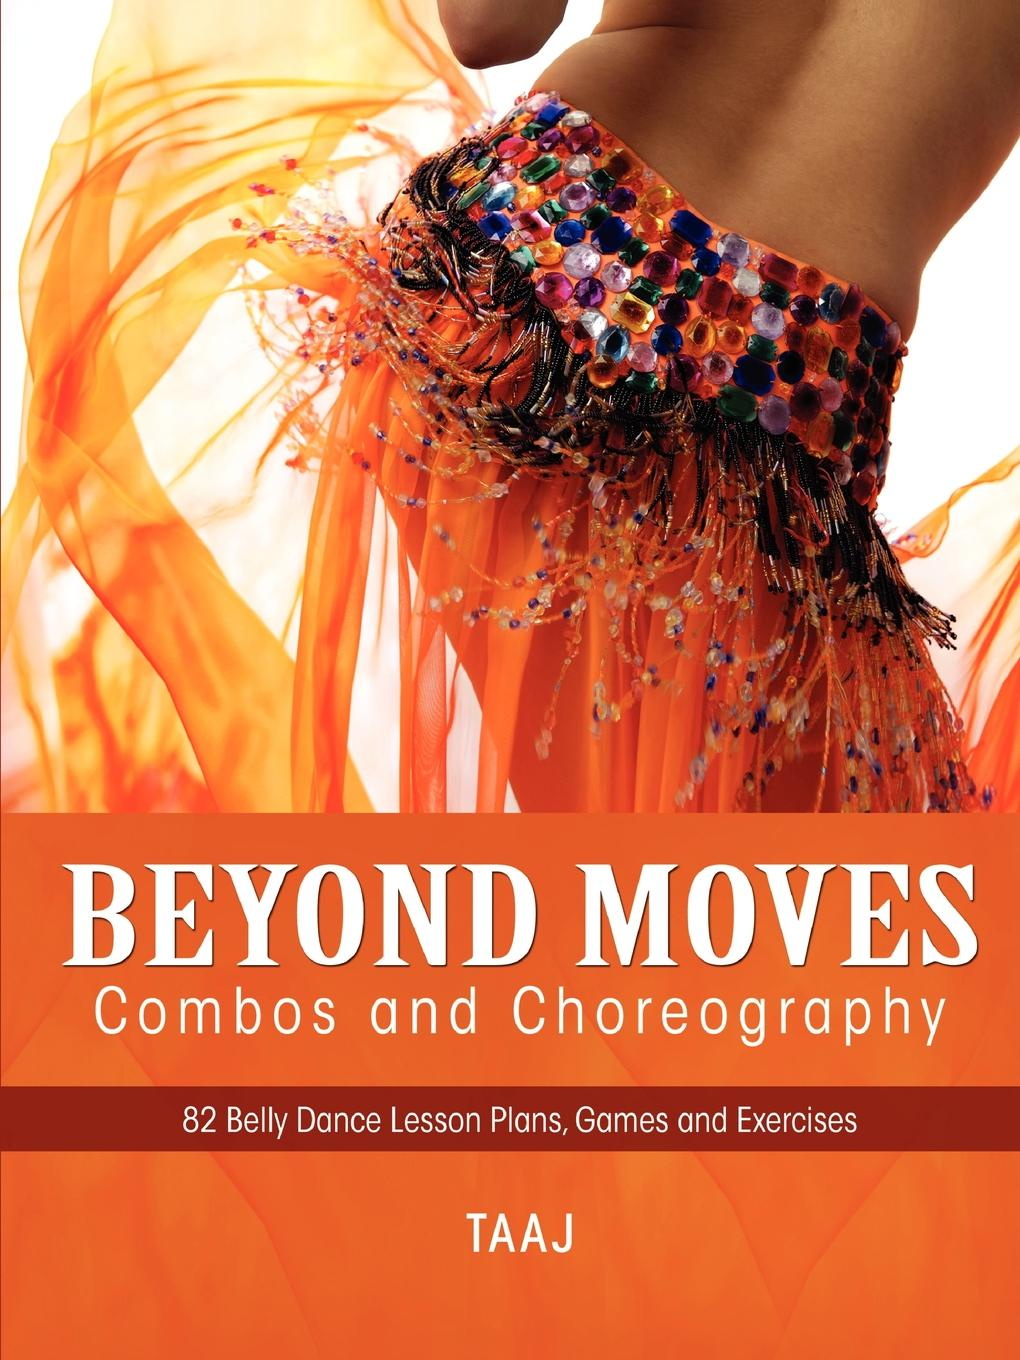 Taaj Belly Dance Beyond Moves, Combos, and Choreography 82 Lesson Plans, Games, and Exercises to Make Your Classes Fun, Productive and Profitable oxford practice grammar basic lesson plans and worksheets